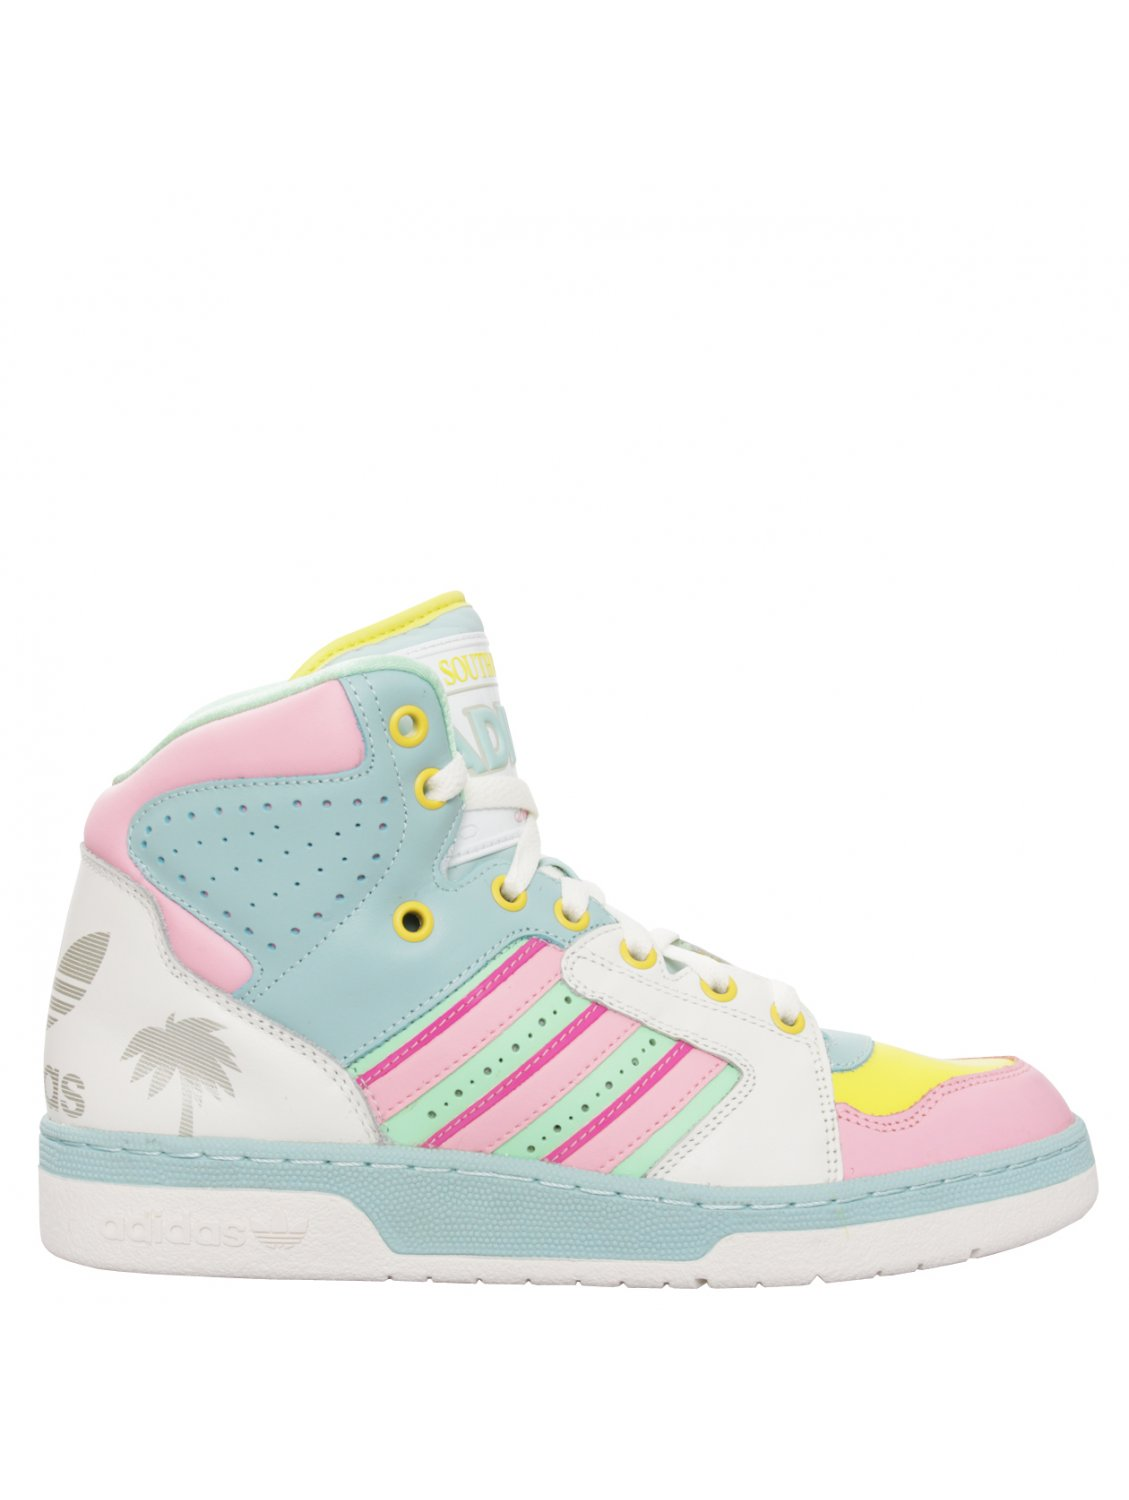 660c6cd4598d Jeremy Scott for adidas License Plate Miami High Top Trainers in ...